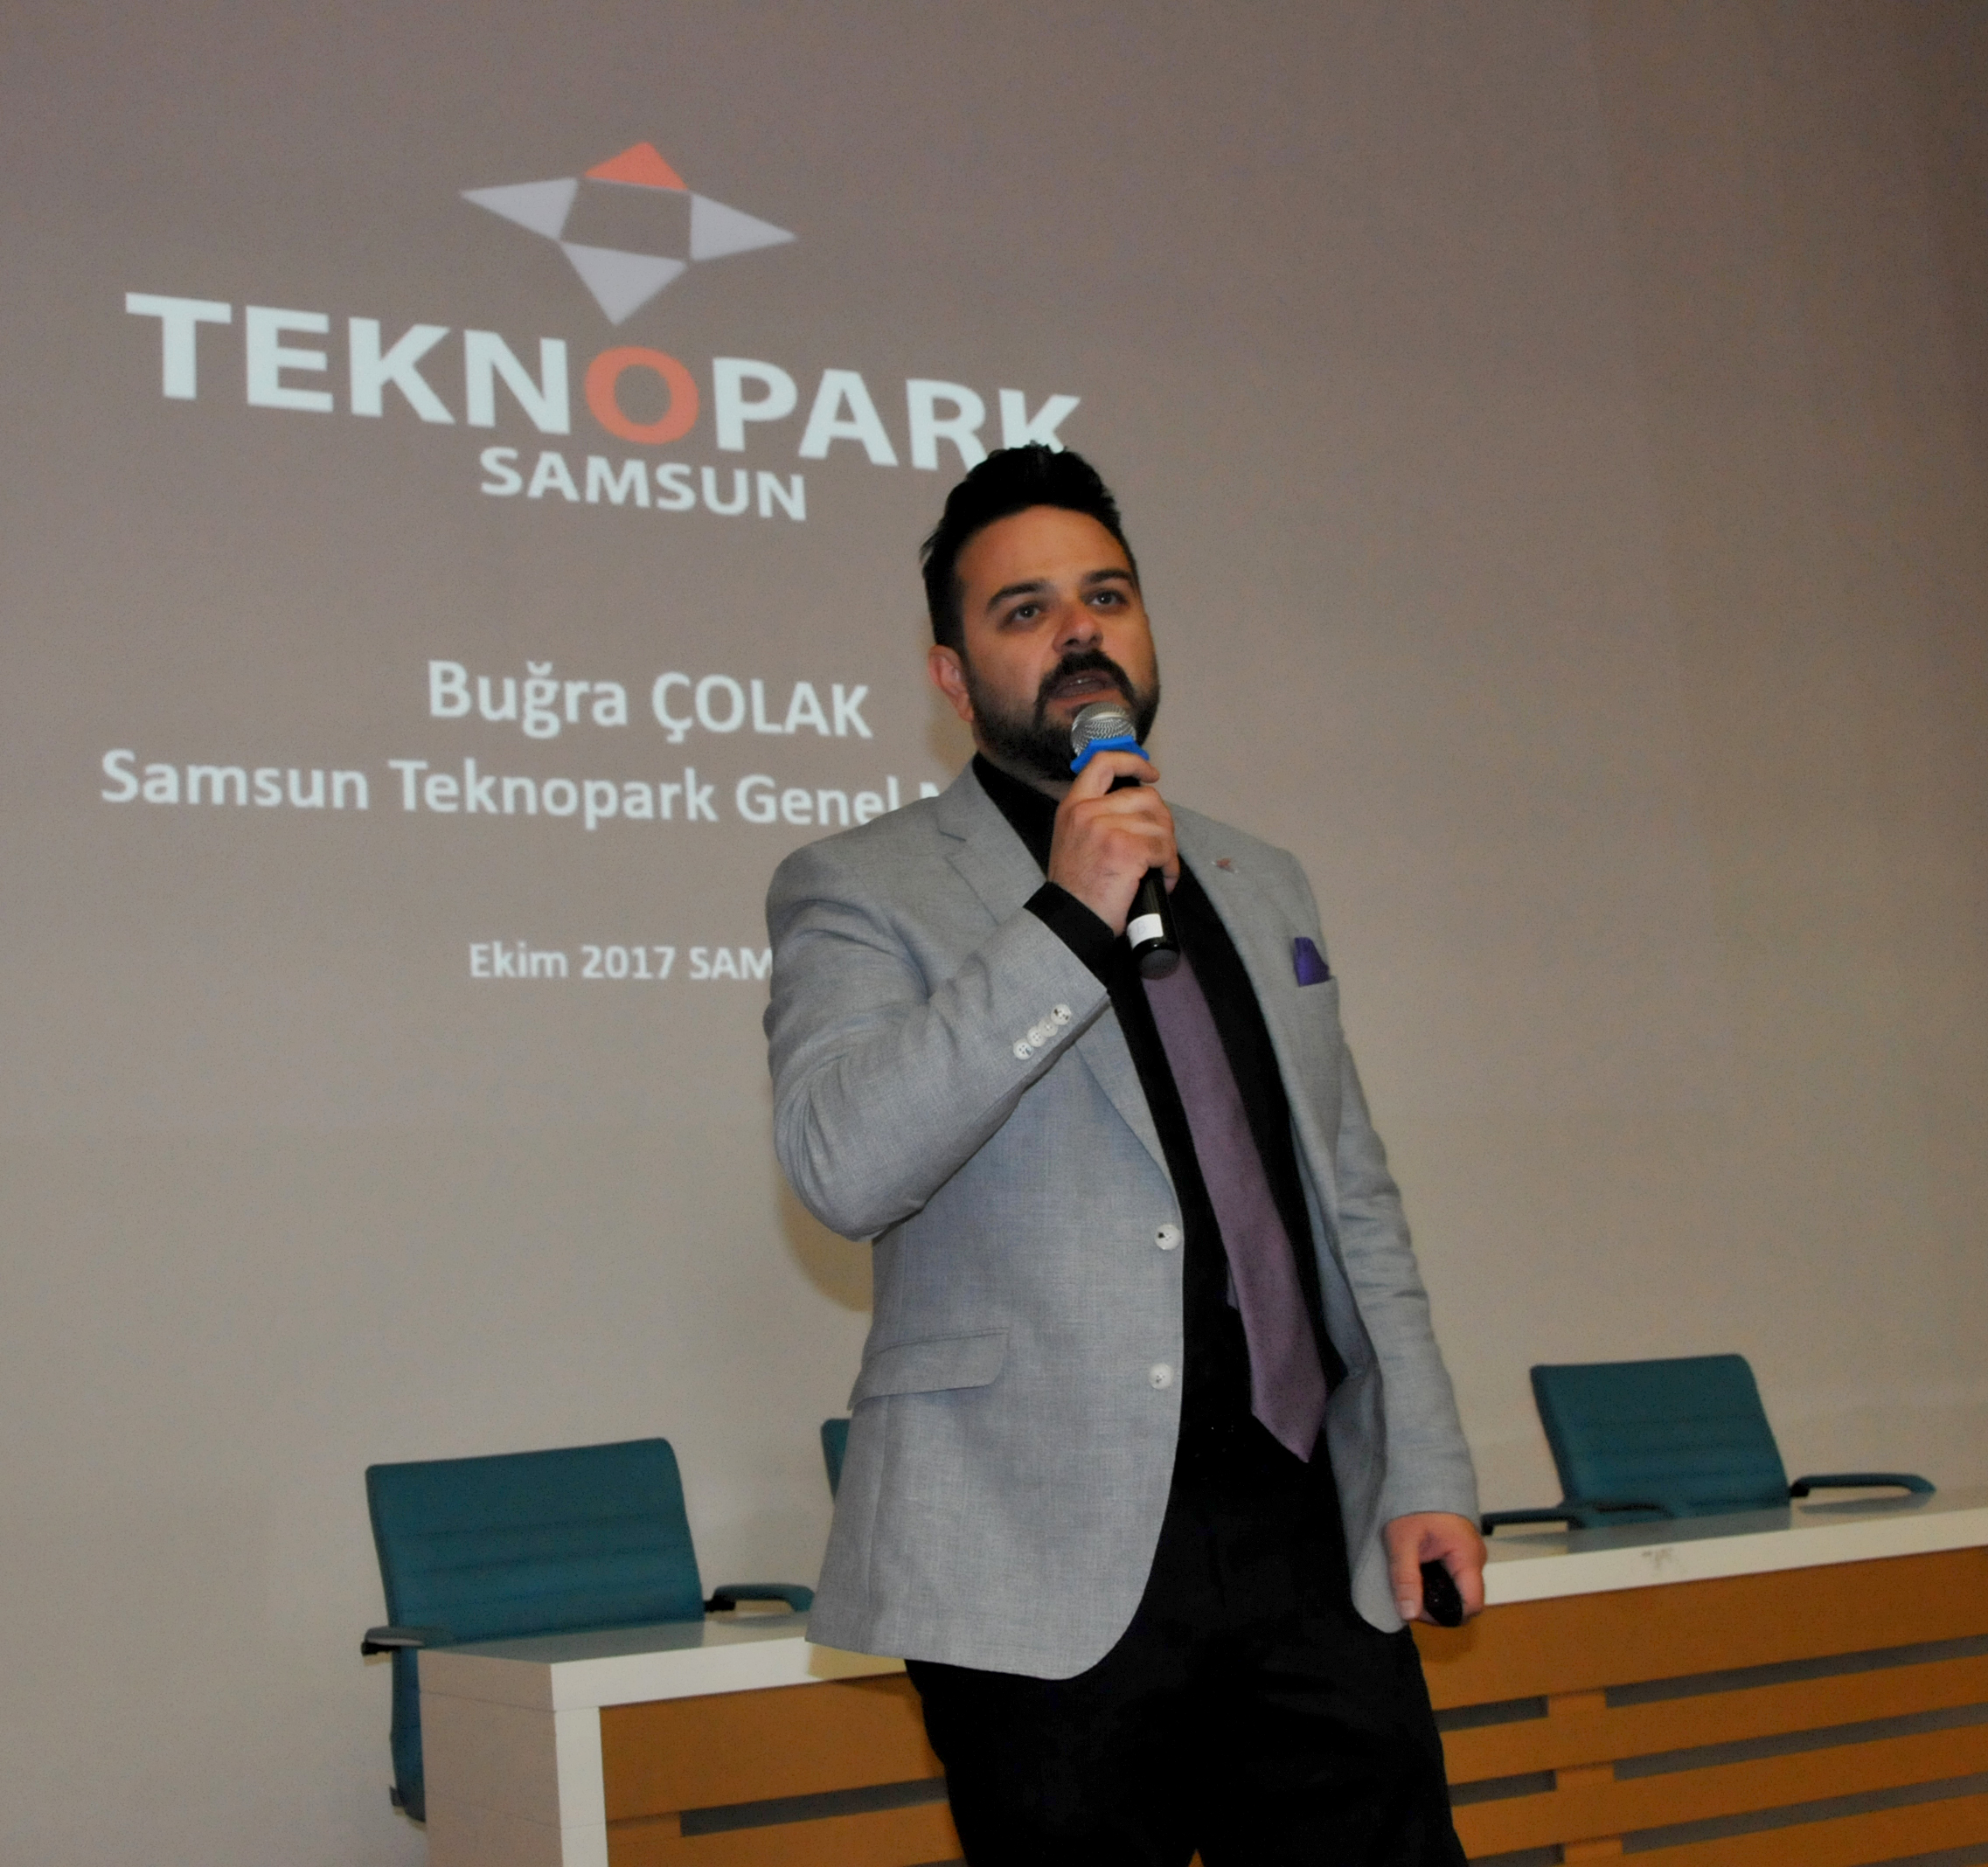 http://www.omu.edu.tr/sites/default/files/files/samsun_technopark_shares_its_projects_with_students/dsc_0150.jpg